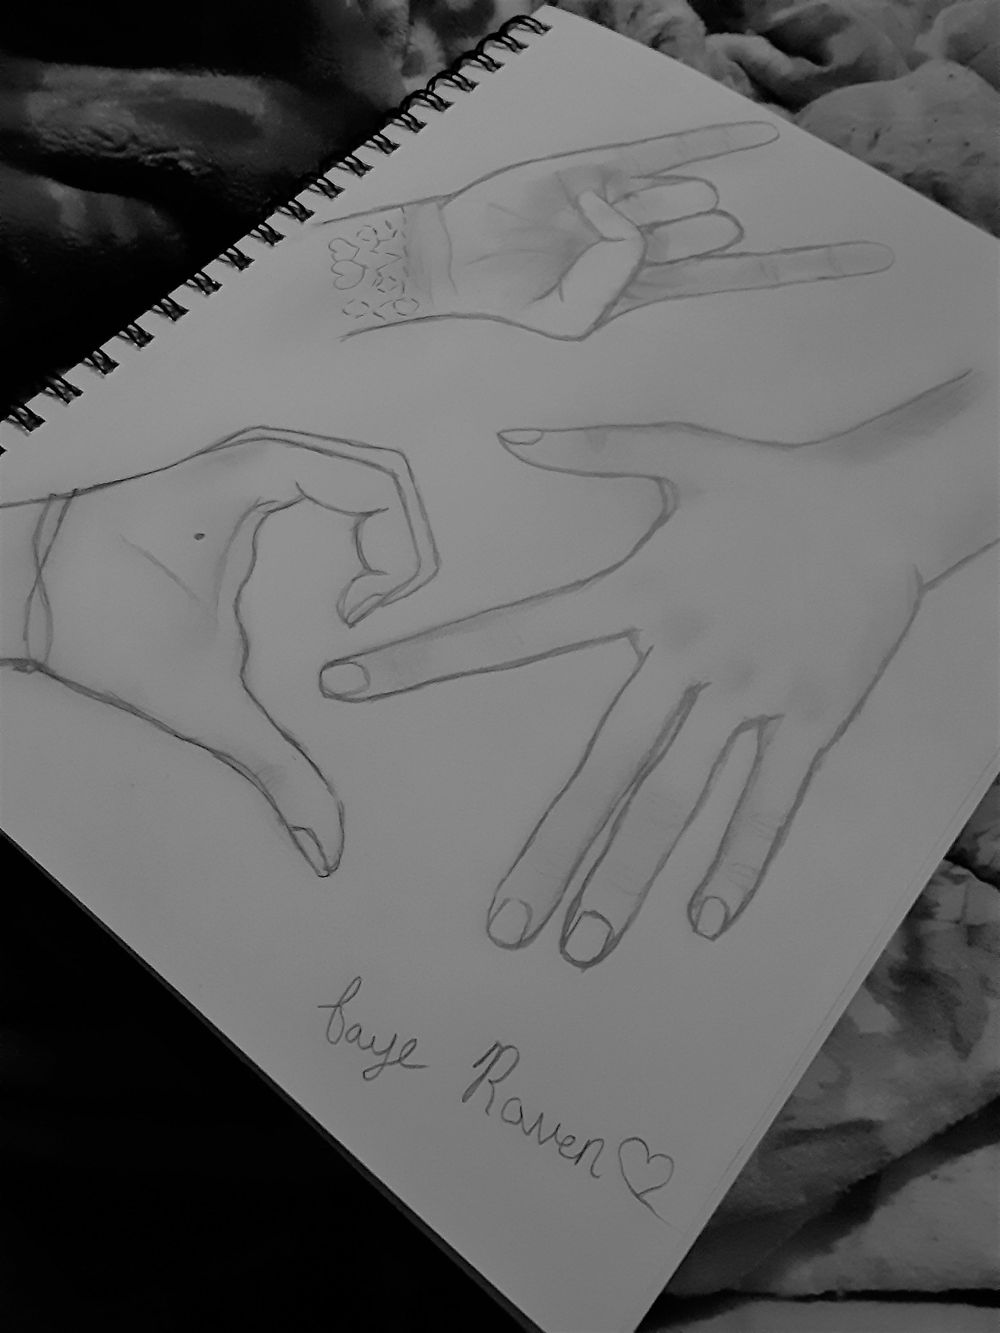 Hands - image 1 - student project